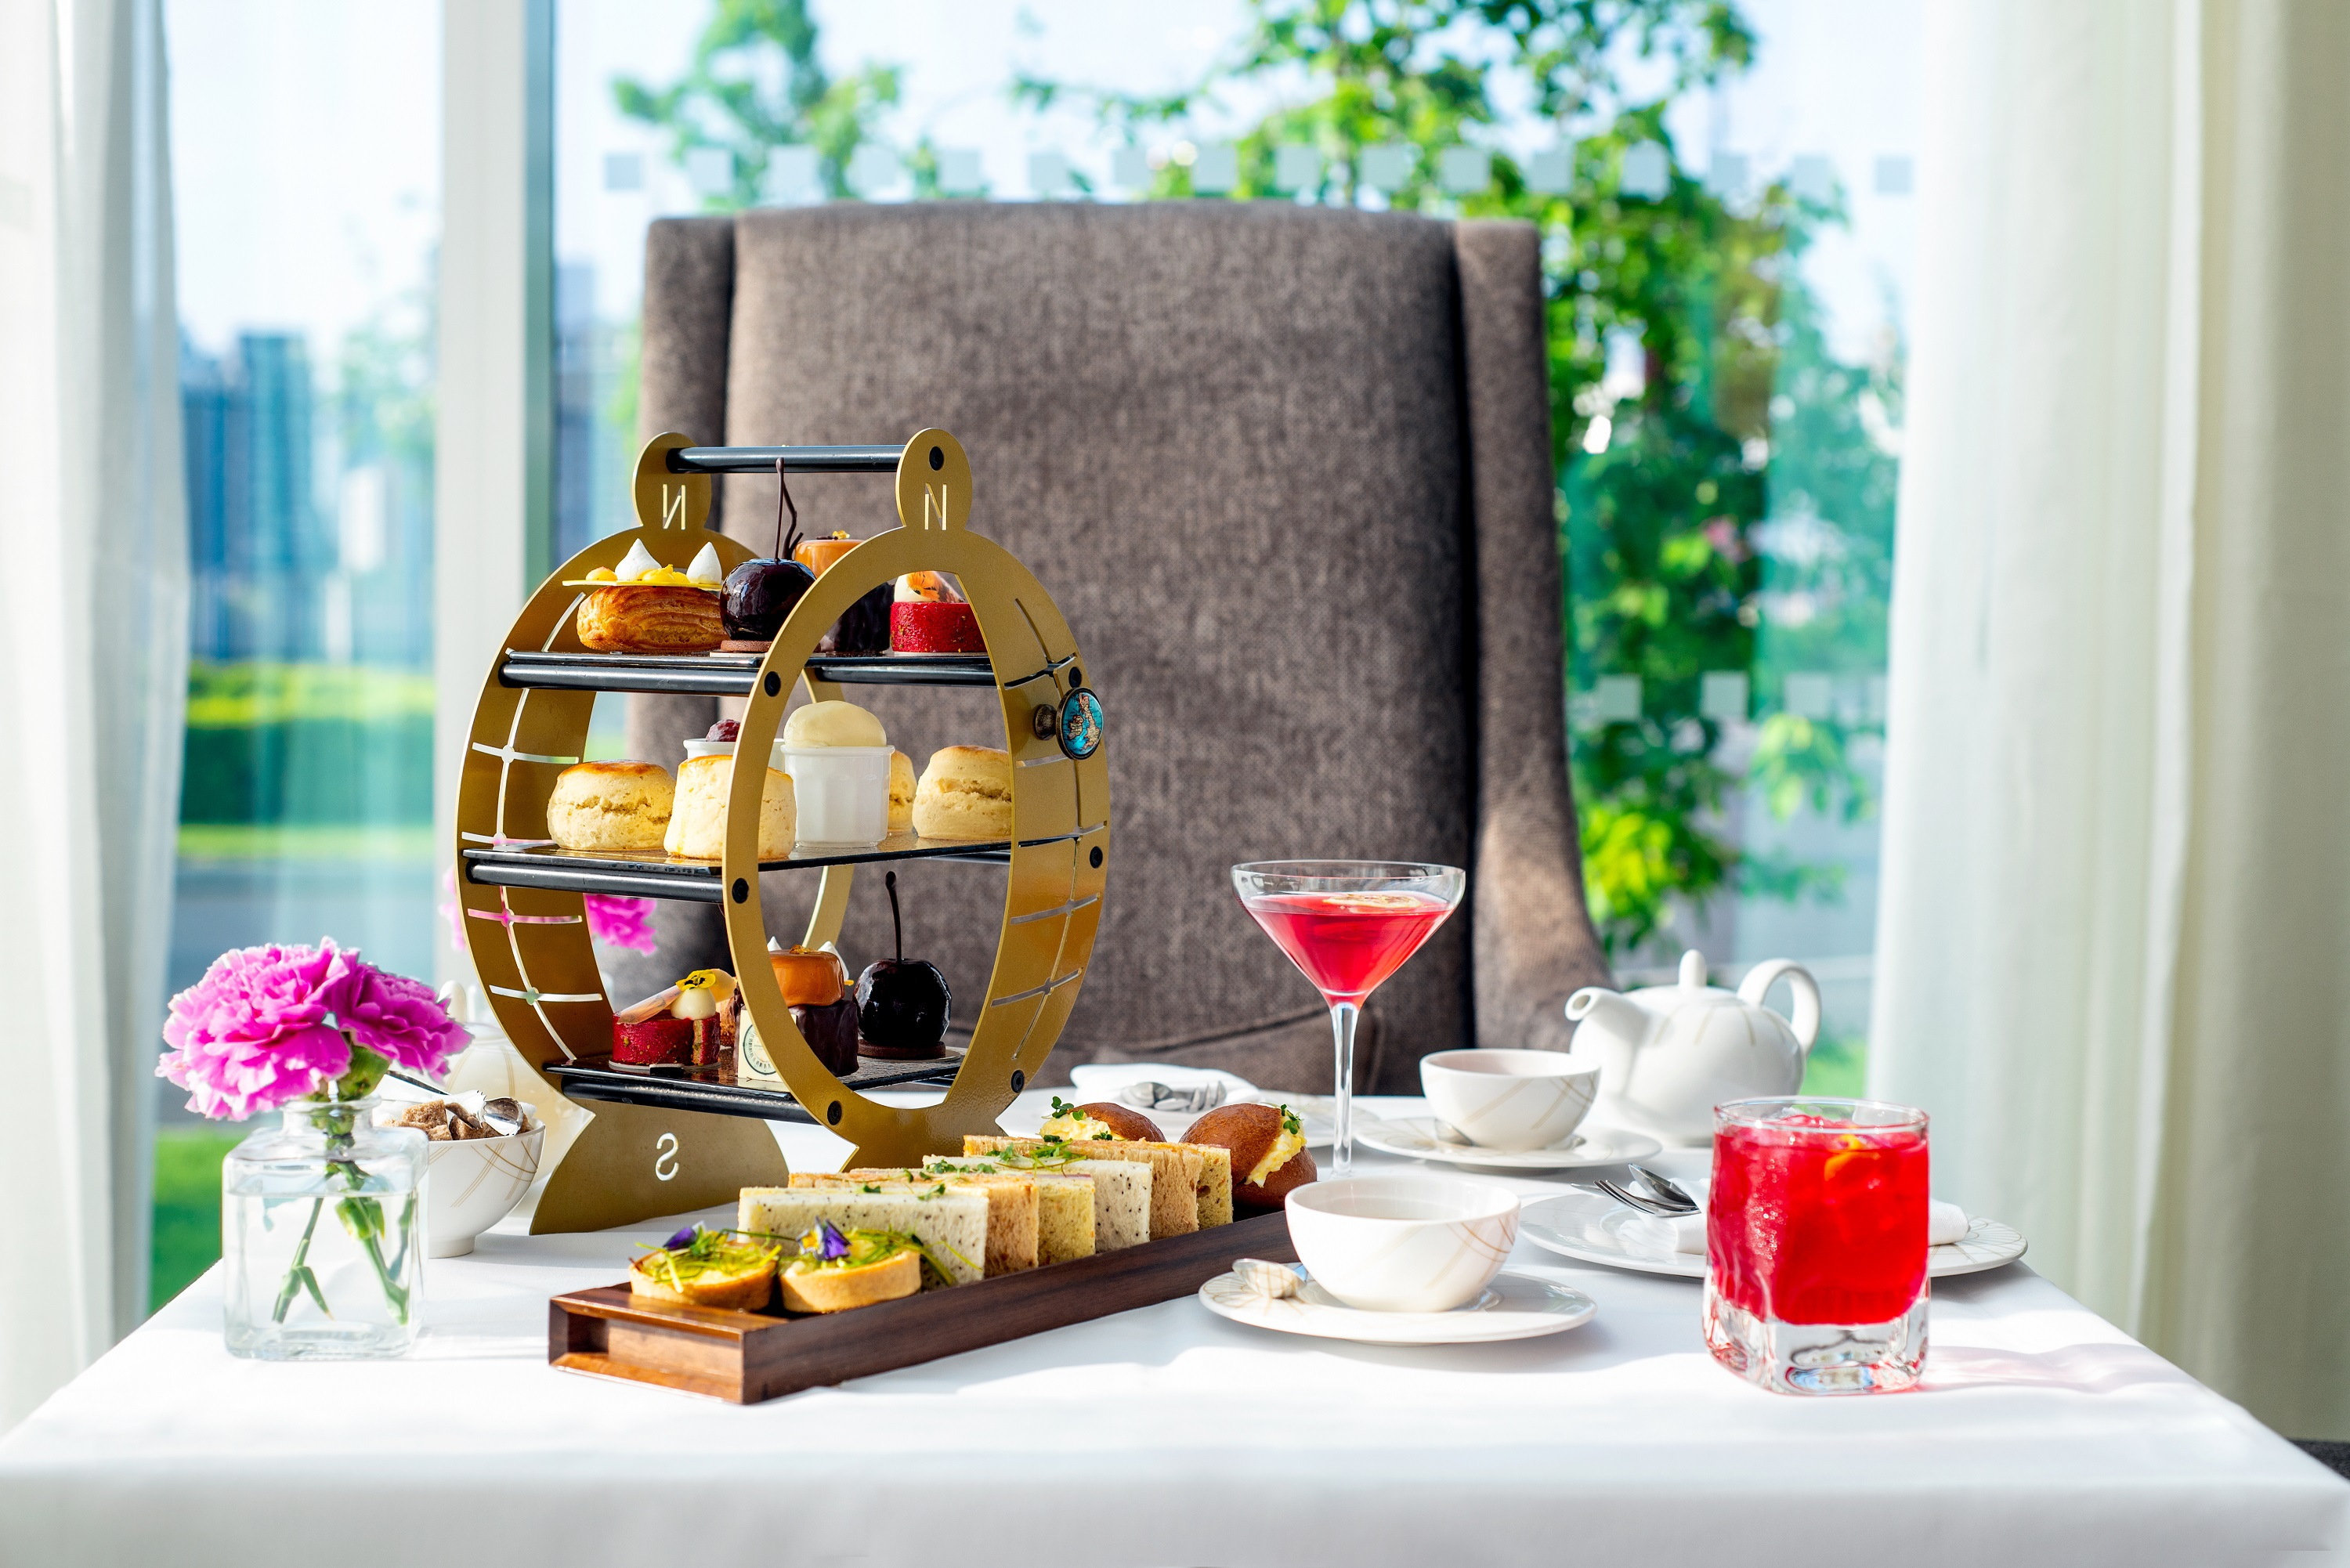 Spa Afternoon Tea for Two